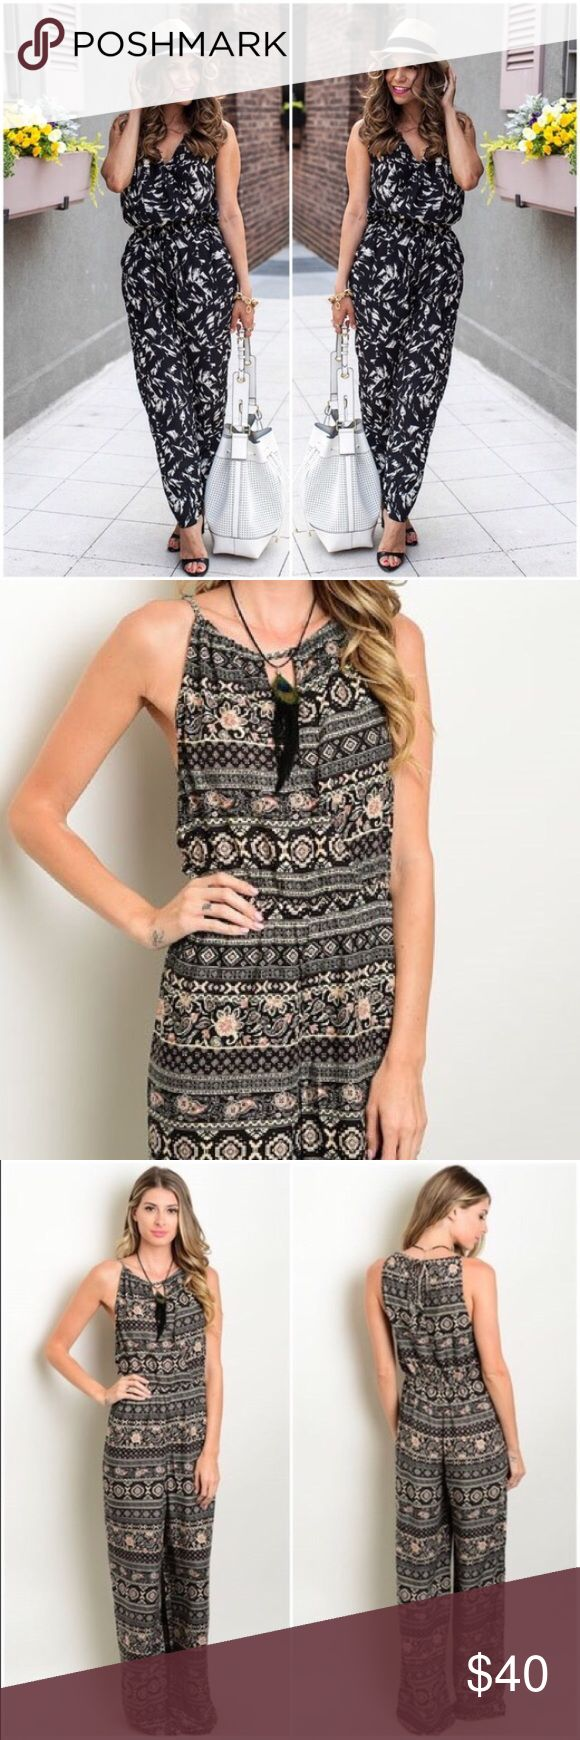 """NWTS Cream/Black Tribal Aztec Jumpsuit  SZ S This perfectly casual jumpsuit in a fun tribal print has my favorite halter neckline, & a small slit down center of front opening. There's a tie closure in back for perfect waist adjustment and loose legs. L frm small of back to hem approx 56"""" (EZ one-fold hem), & 100% Rayon. First photo/accessories is for styling inspiration. Add a moto jkt, blazer or shawl for balmy evenings. Look fab in 5 minutes!! LAST ONE!! Please Enjoy💚💗 MSRP $150. Denim…"""